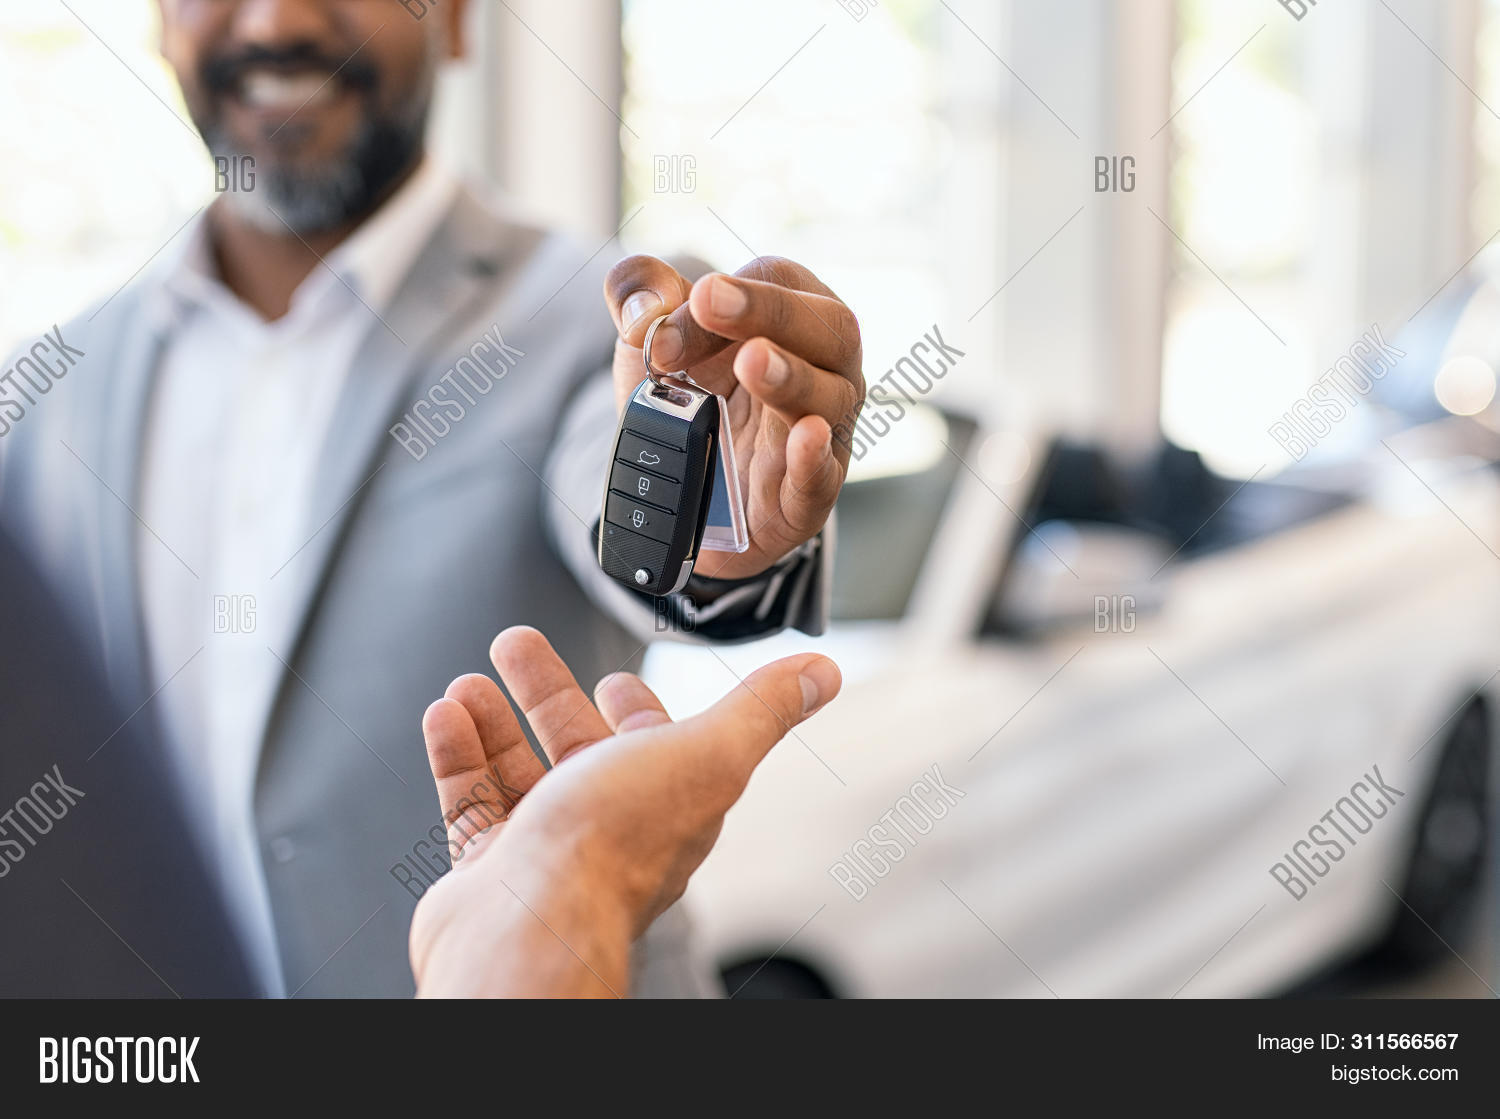 african,african business,agent,agreement,american,auto,auto care,automobile,automotive,buy,buyer,car shop,client,close up hands,closeup,copy space,customer,deal,dealer,dealership,detail,giving,giving car keys,hand,holding,insurance,key,luxury,man,multi ethnic group,new,owner,people,purchase,rental,sales,salesman,salon,sell,seller,service,shopping car,showroom,showroom car,transport,transportation,vehicle